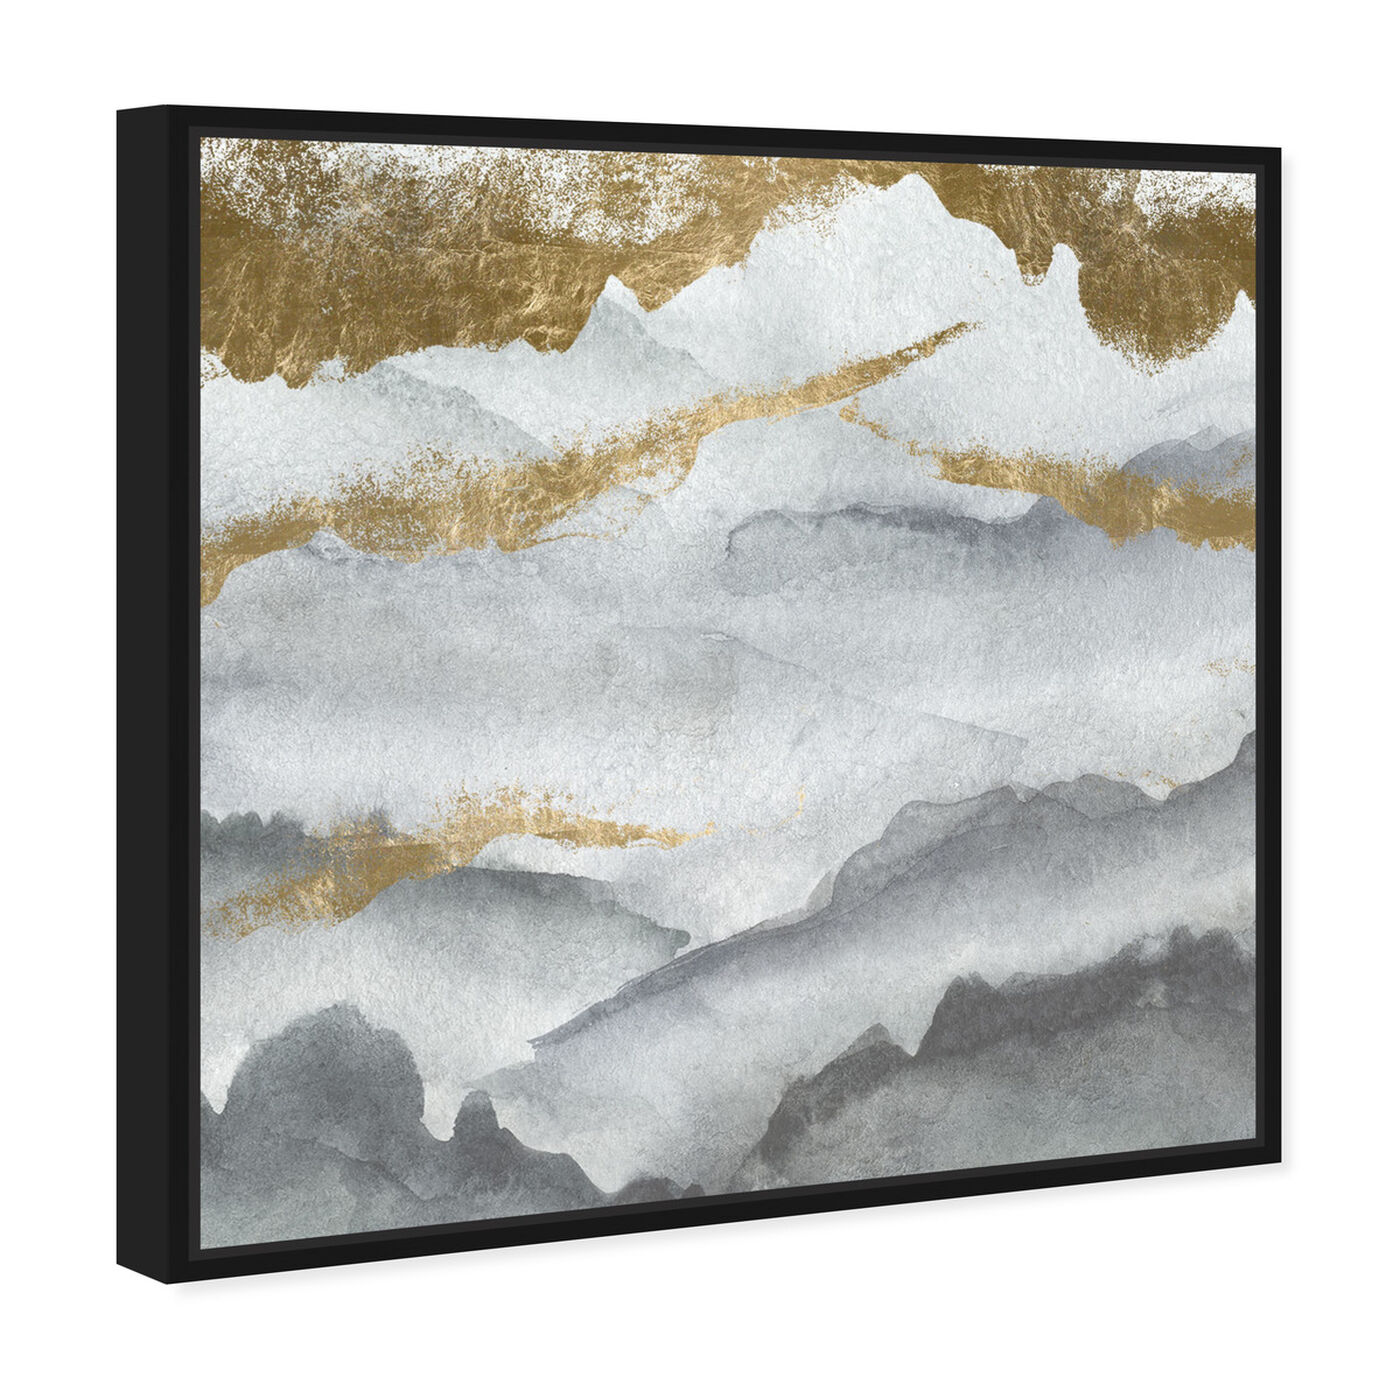 Angled view of Tibet Mountains featuring abstract and watercolor art.